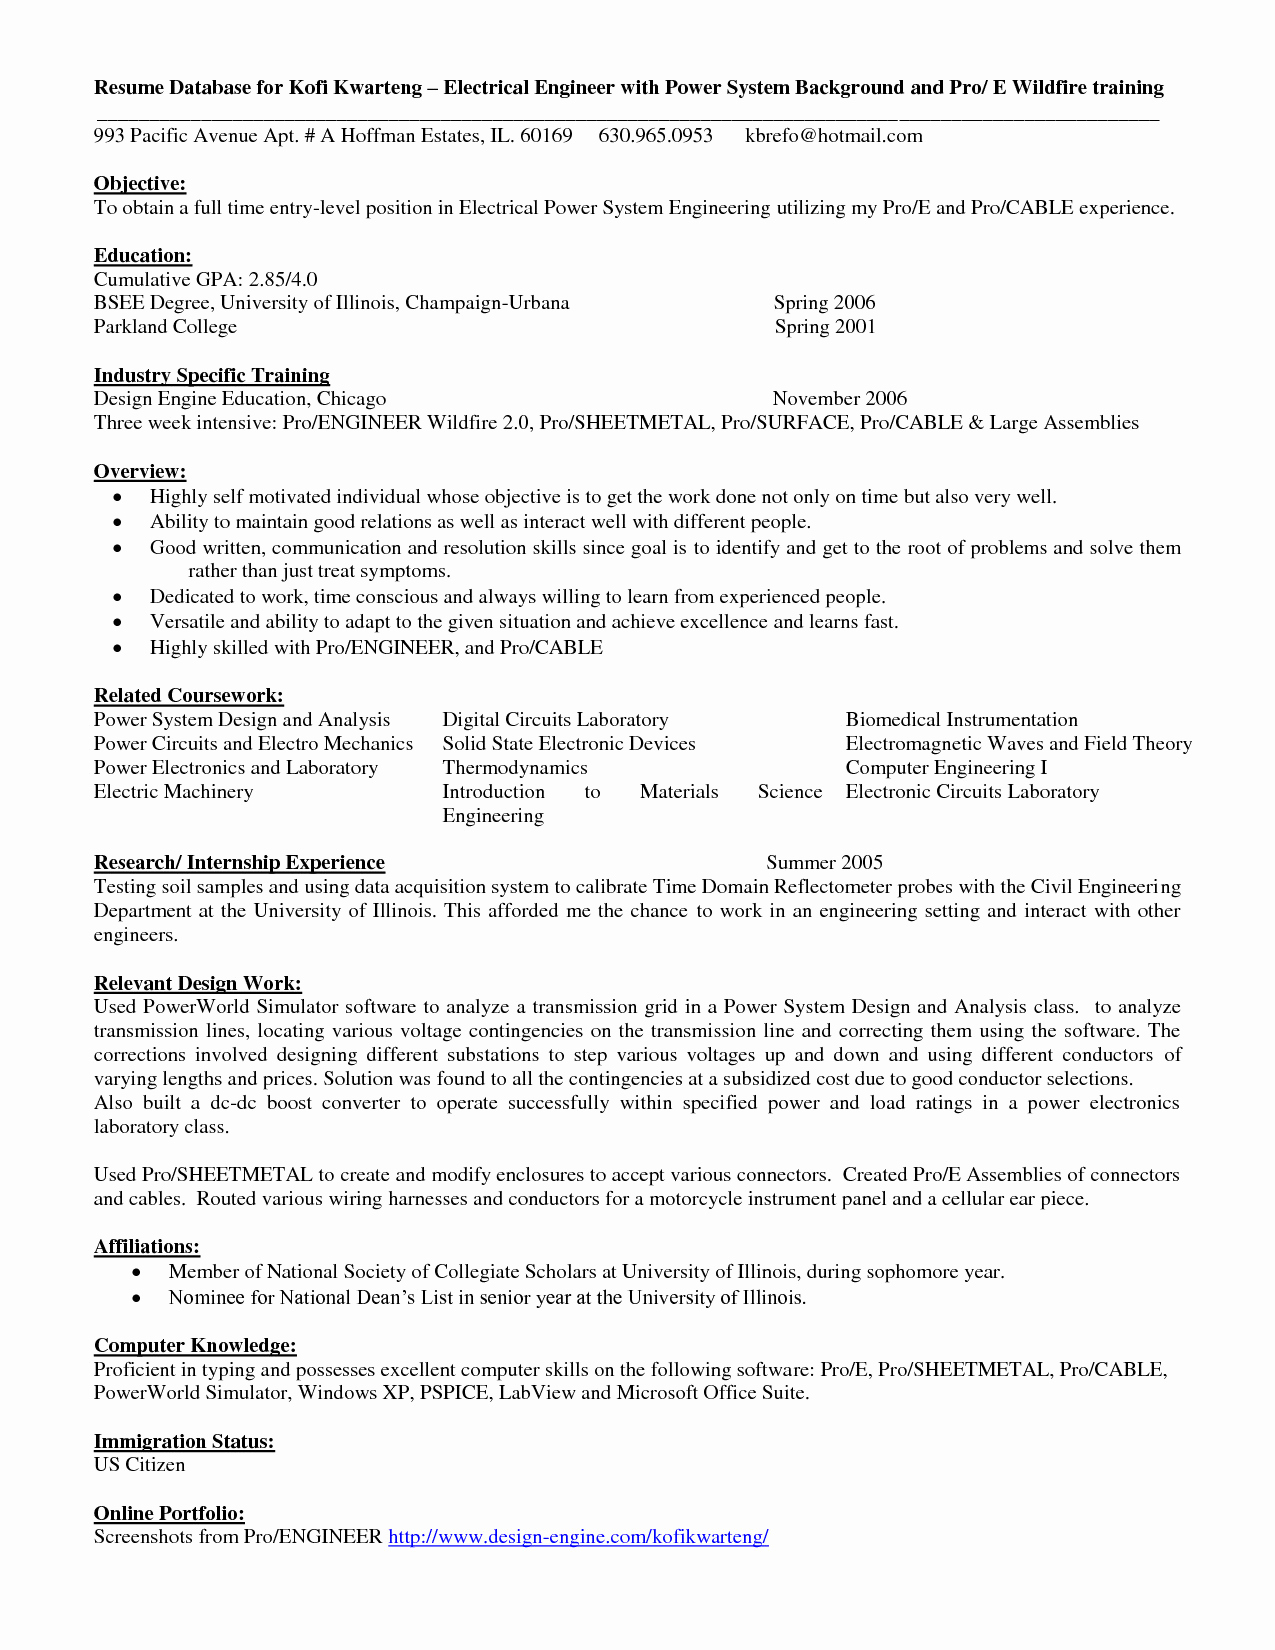 Electrical Engineering Entry Level Resume - Electrical Engineering Cover Letter Entry Level Valid Sample Resume